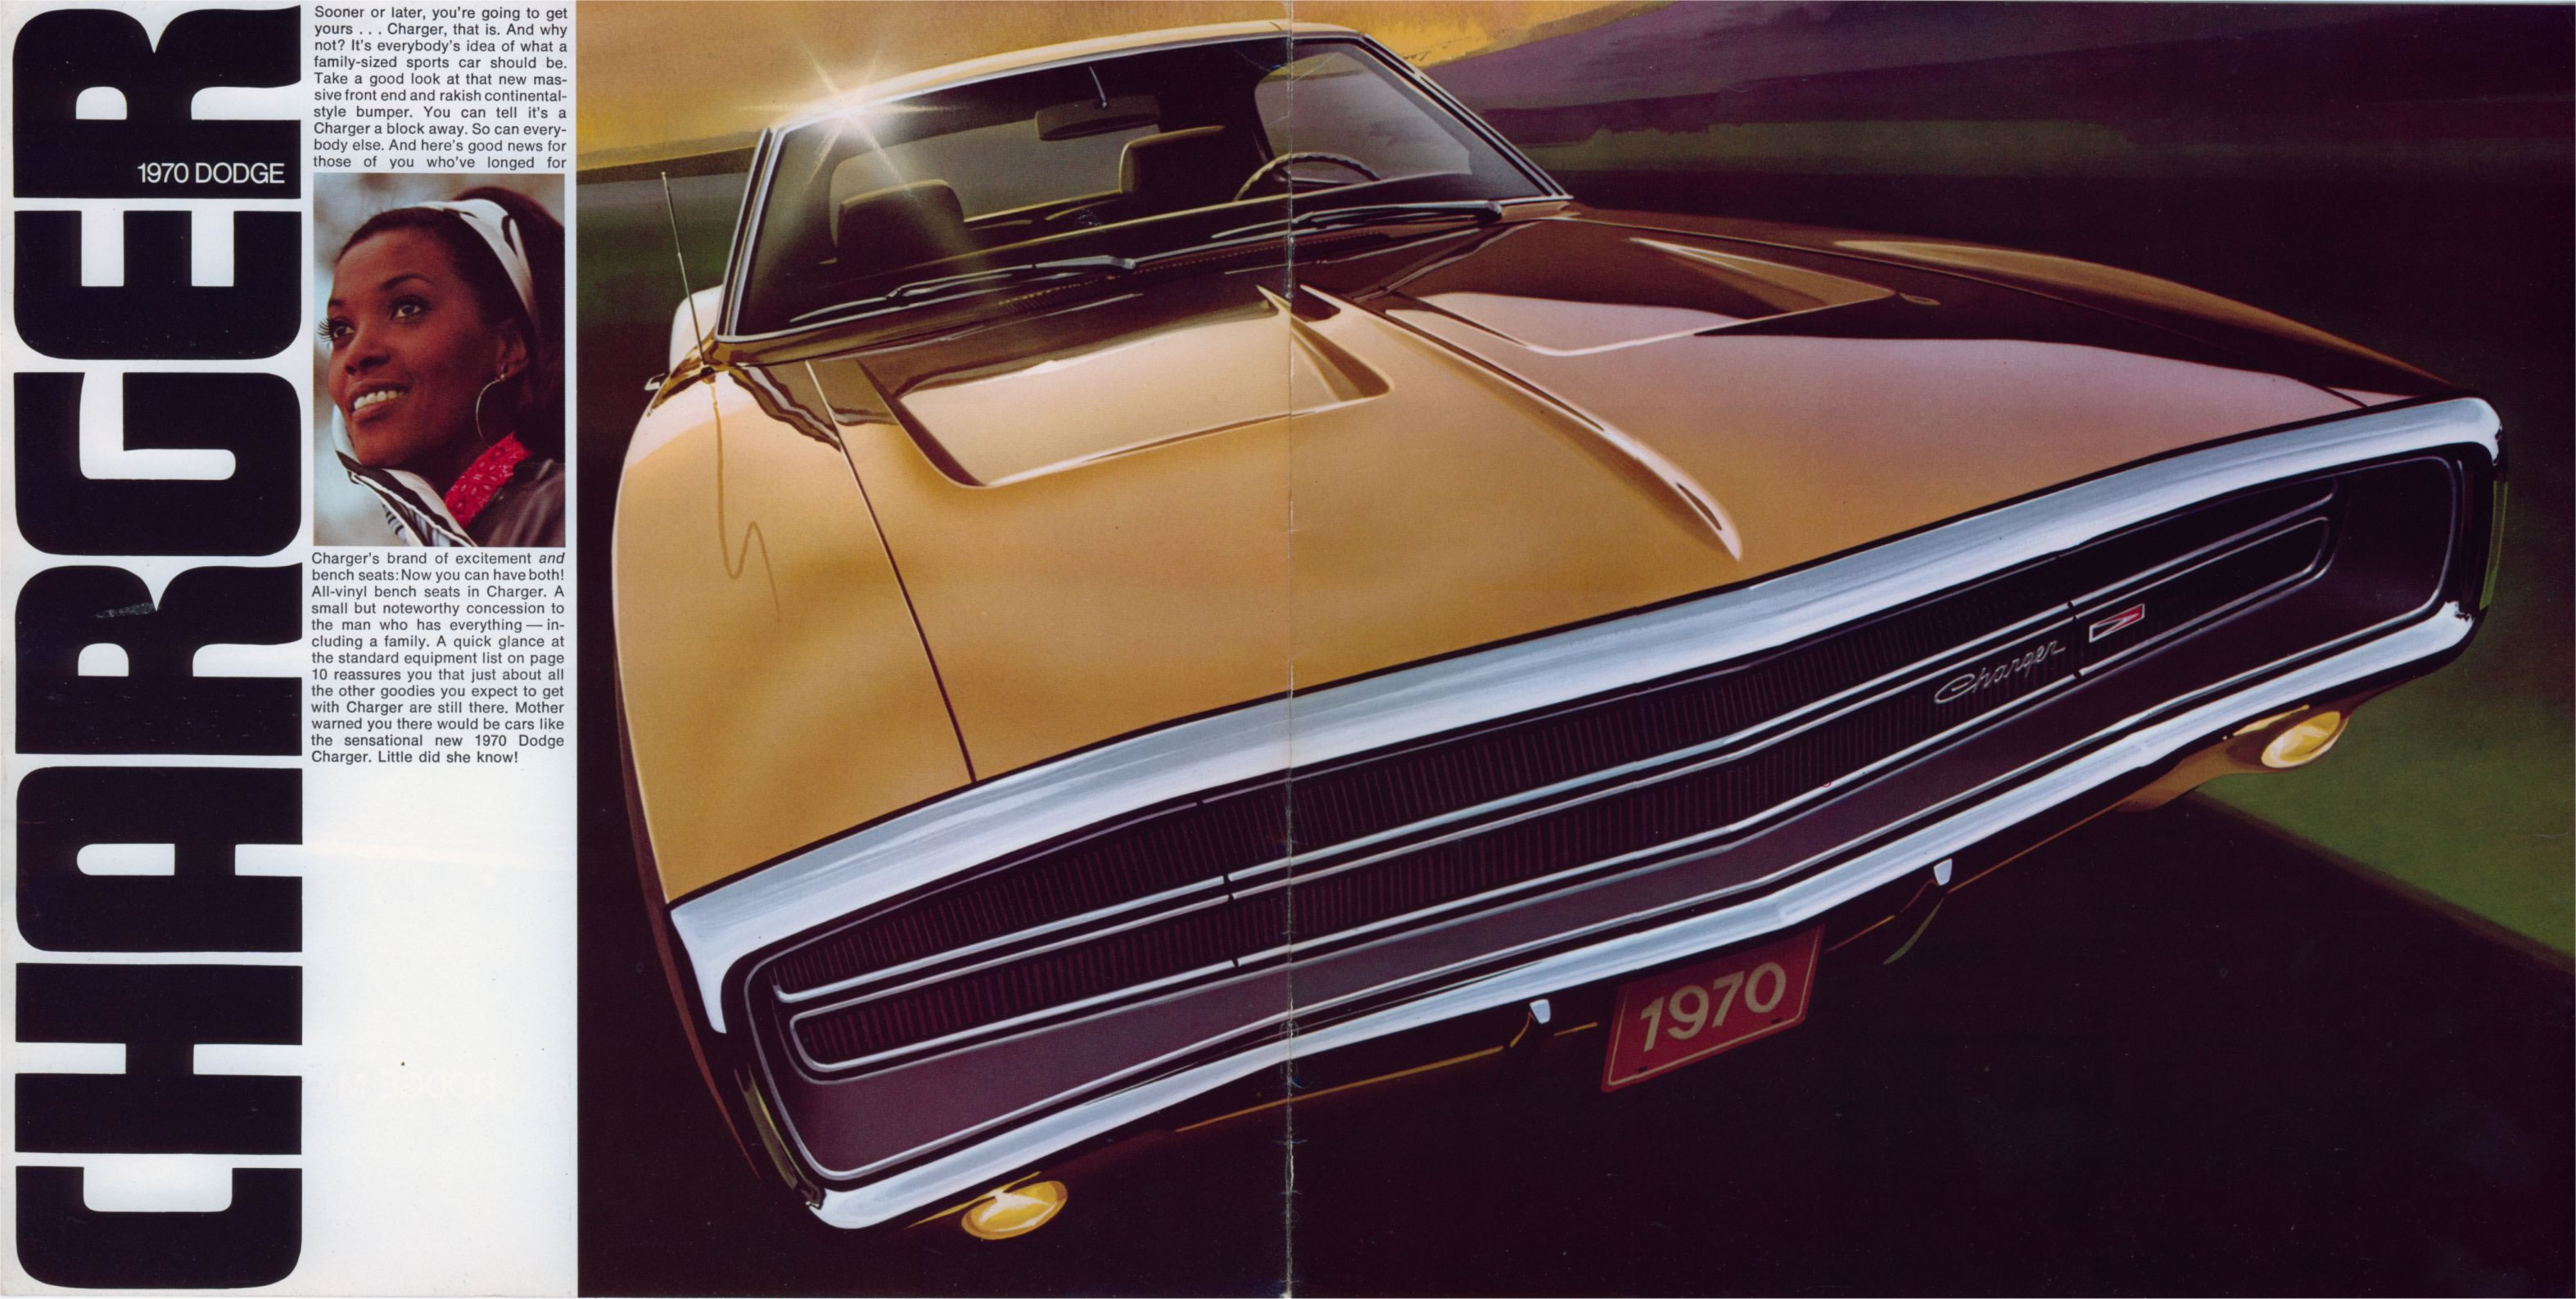 1970 Dodge Charger/dodge charger 70 02.jpg